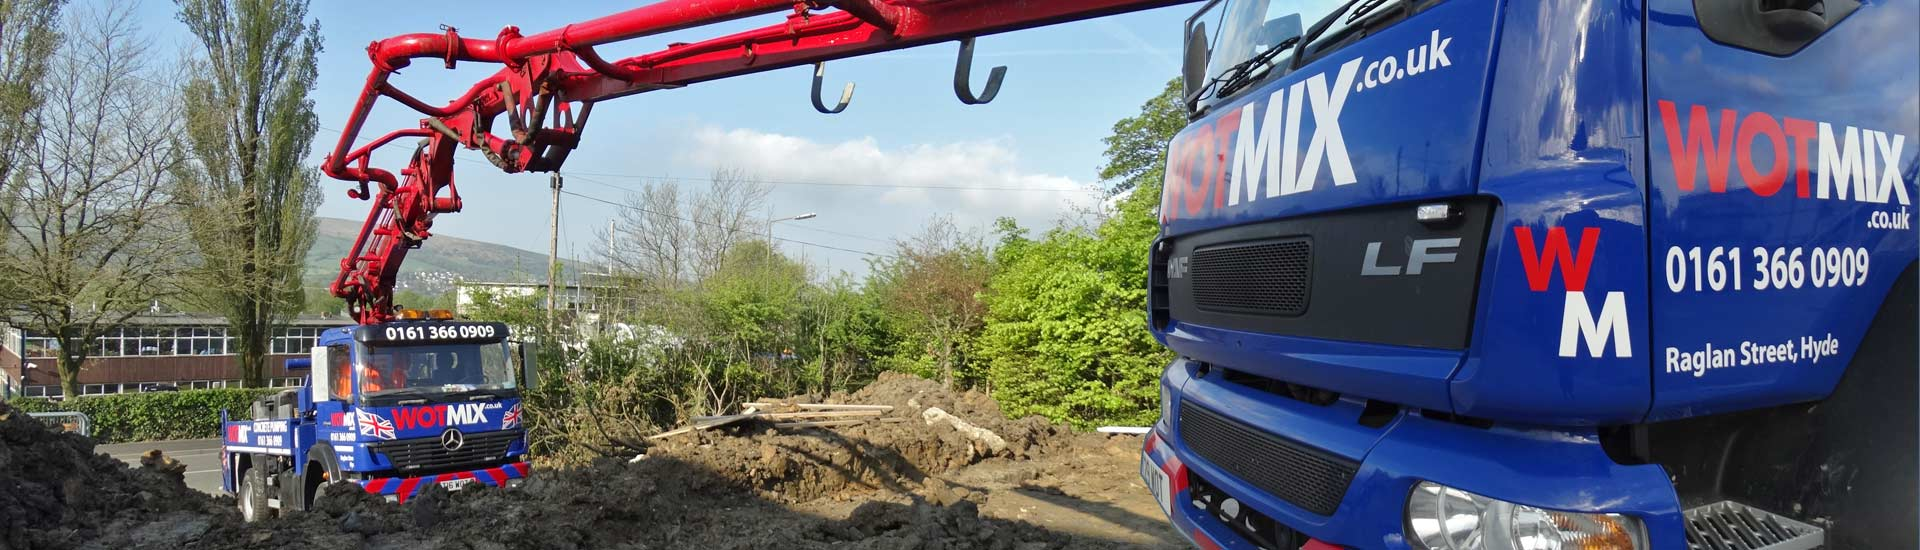 Concrete Pump Hire Manchester